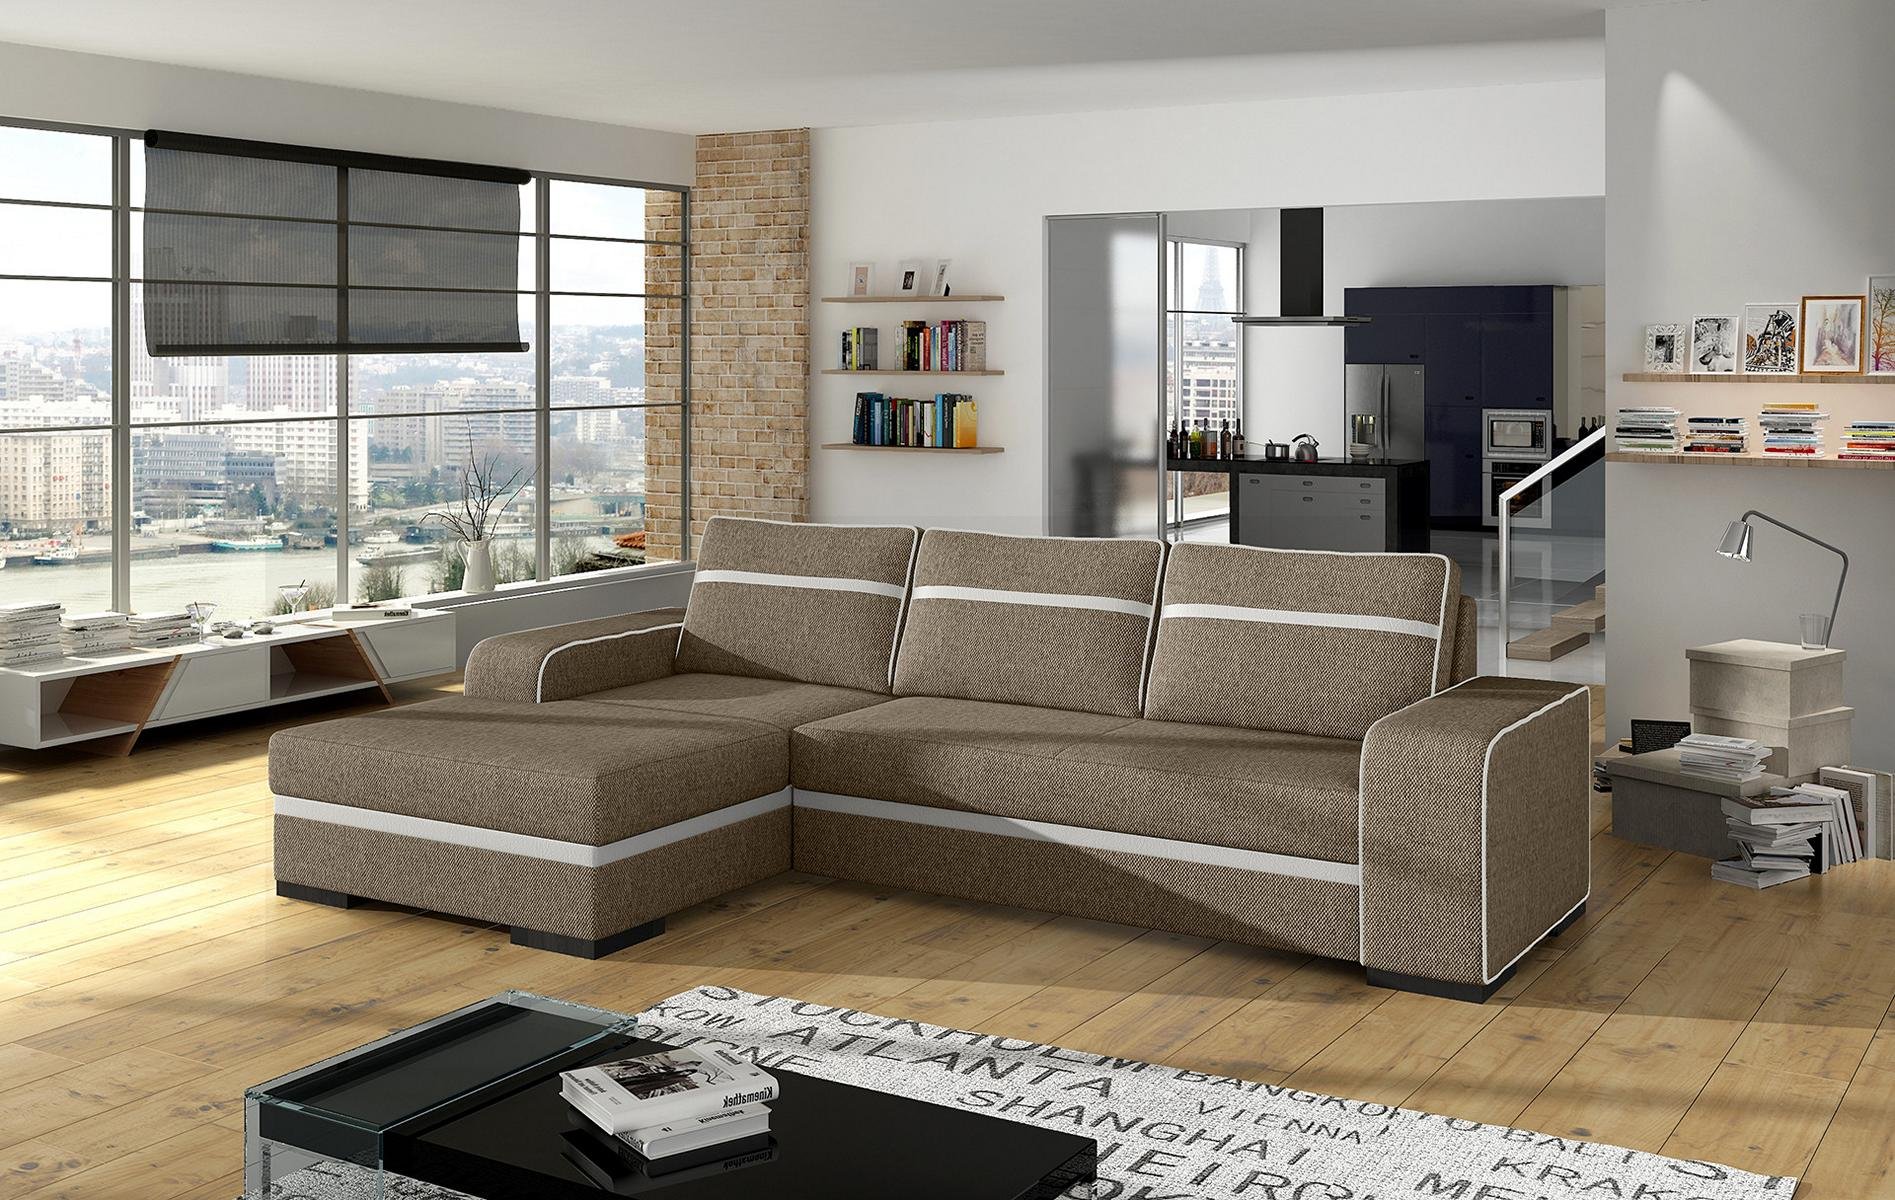 sofas ledersofa finn mit bettfunktion bettkasten ecksofa schlaffunktion. Black Bedroom Furniture Sets. Home Design Ideas